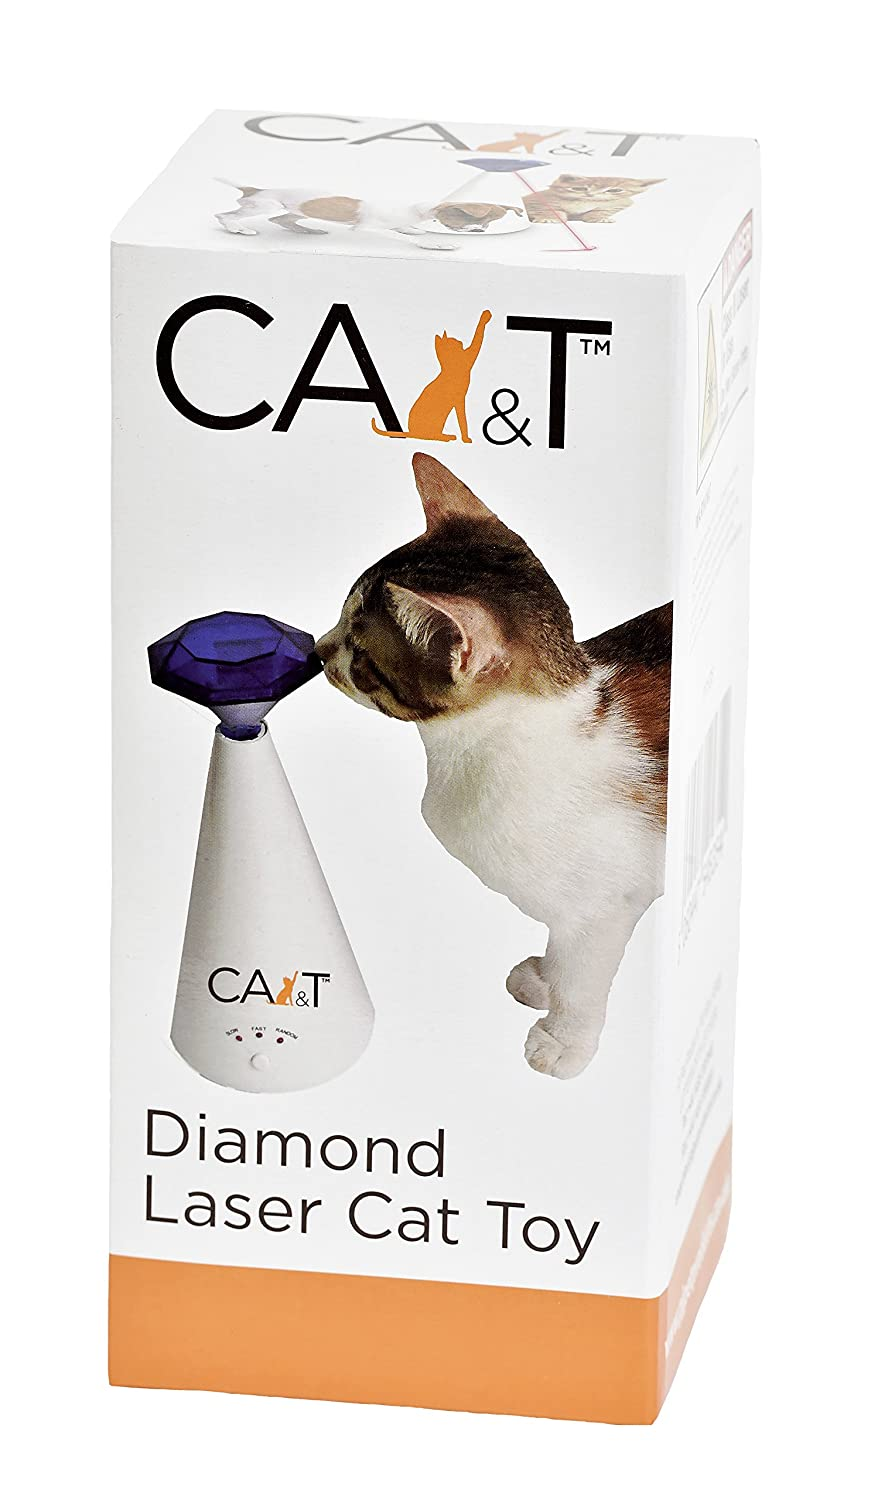 CA&T Diamond Laser Cat Toy - 3 Operating Modes - Interactive/Automatic